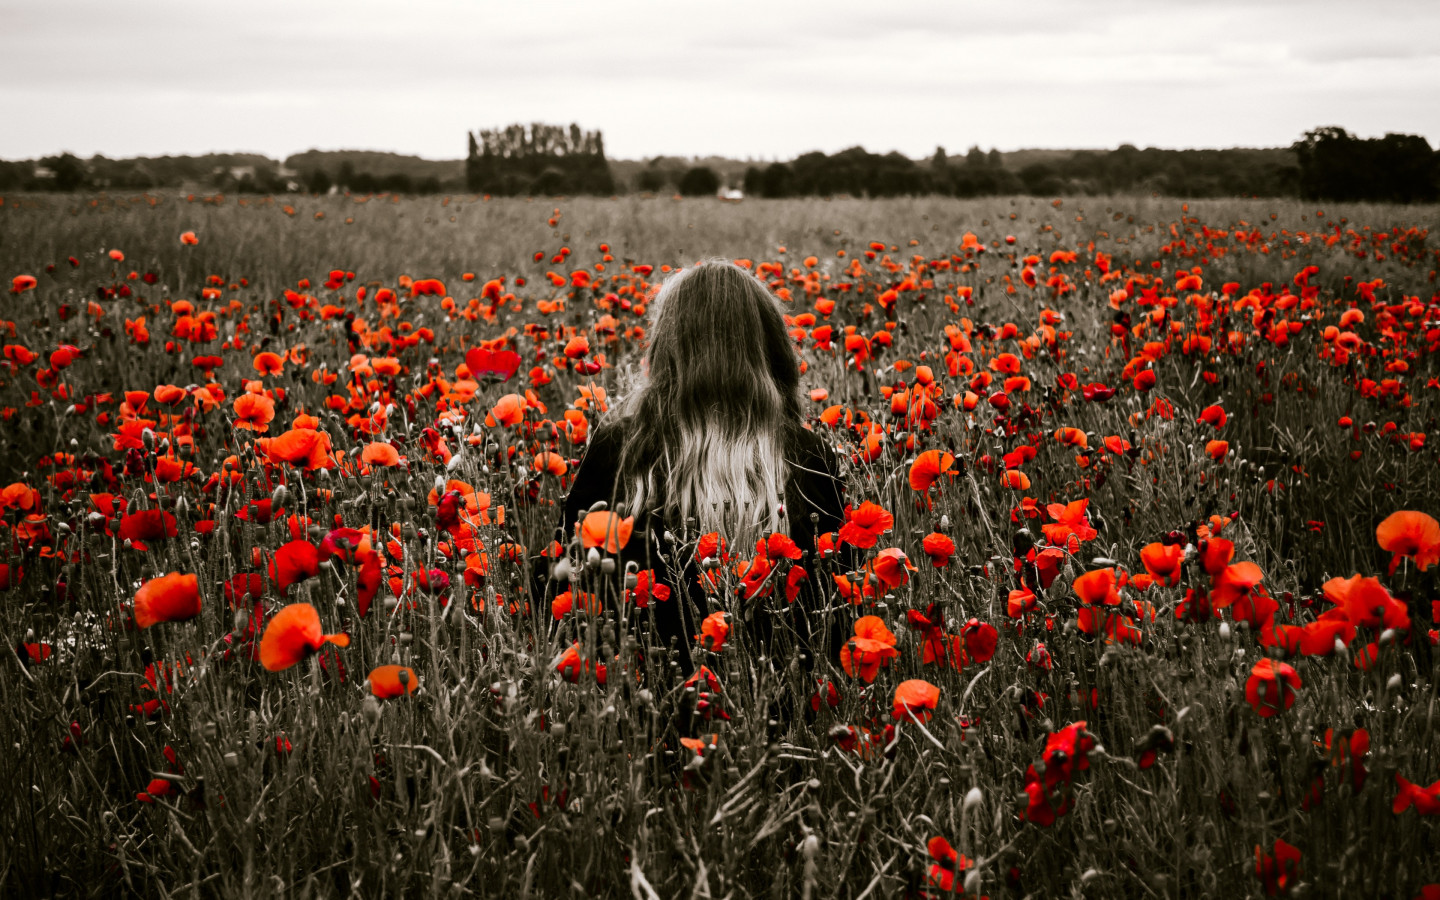 Girl in the field with red poppies wallpaper 1440x900